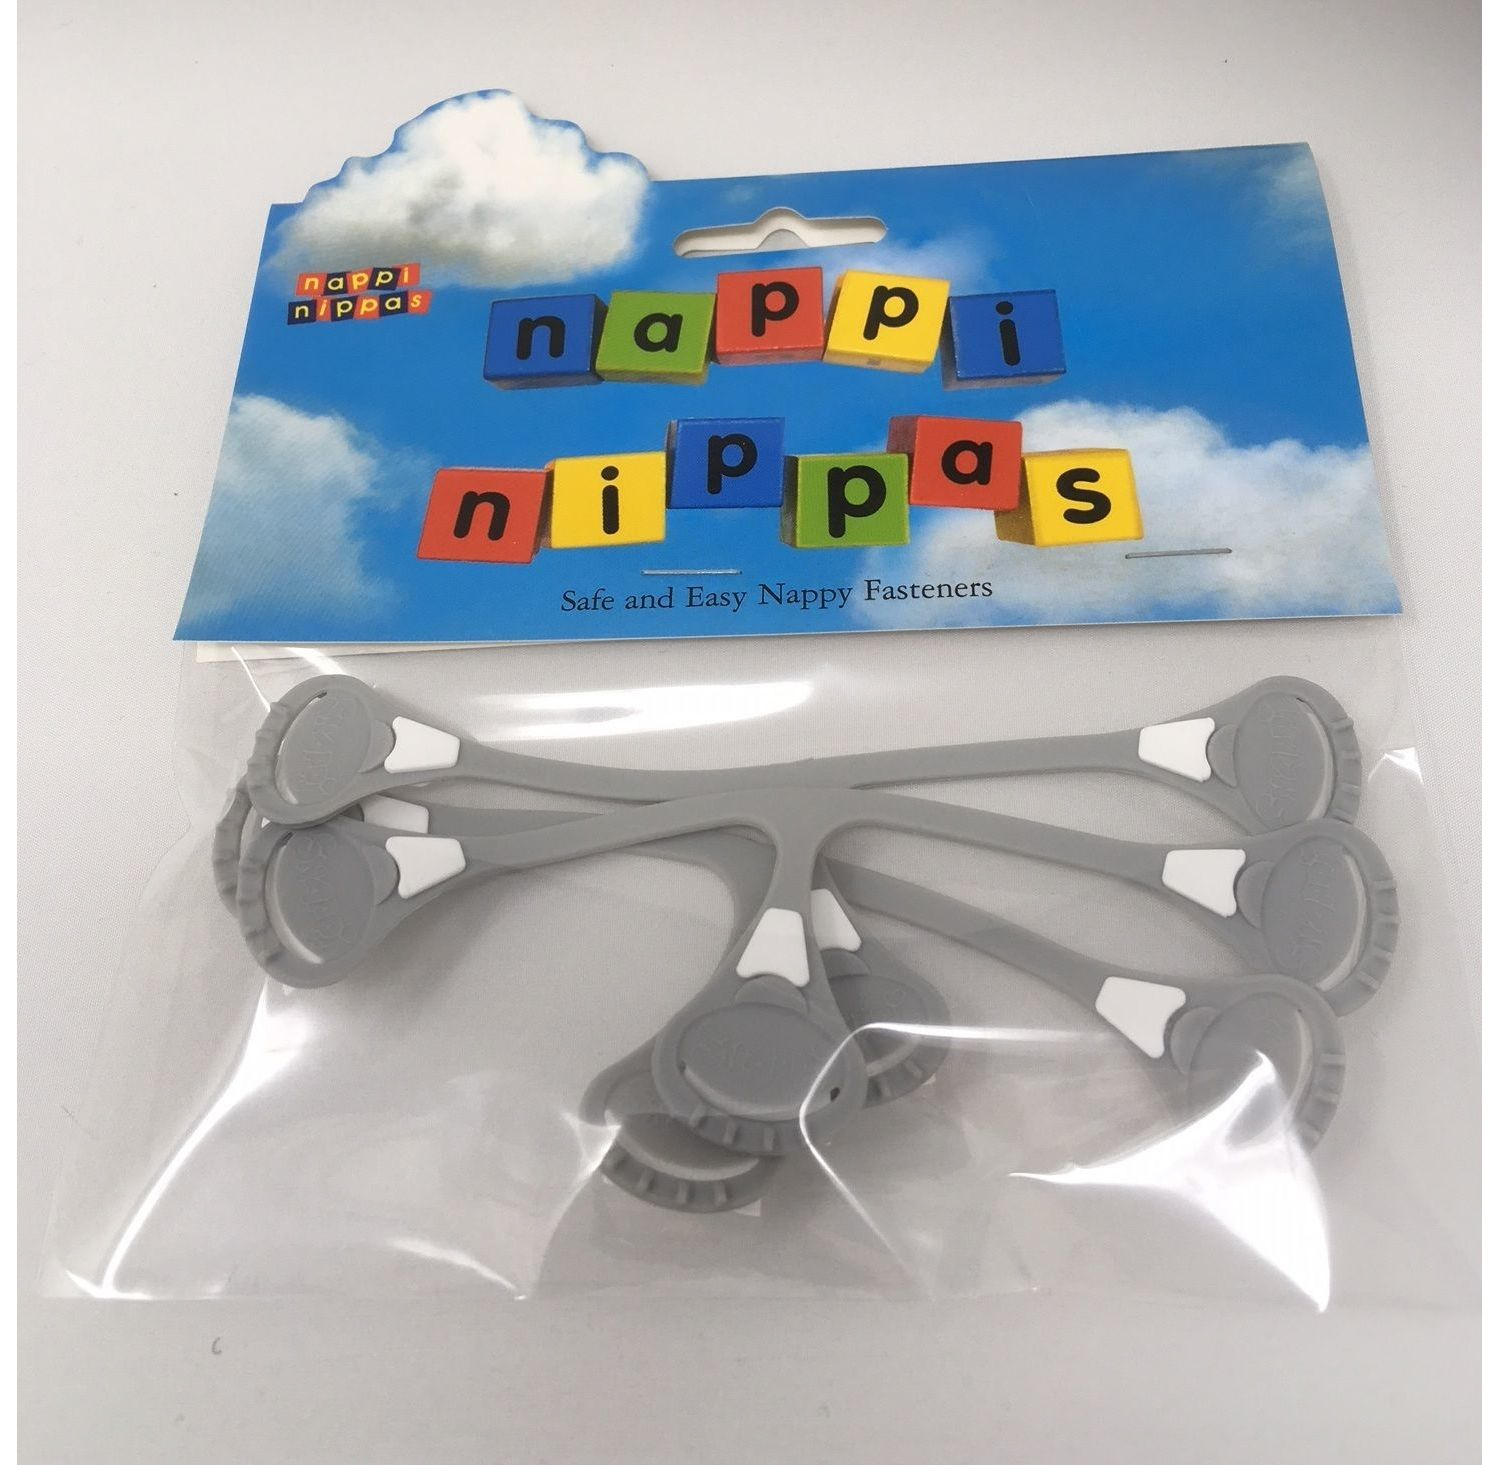 Nappi Nippas Nappy Fastener 3 Pack - Choose your colour - Grey